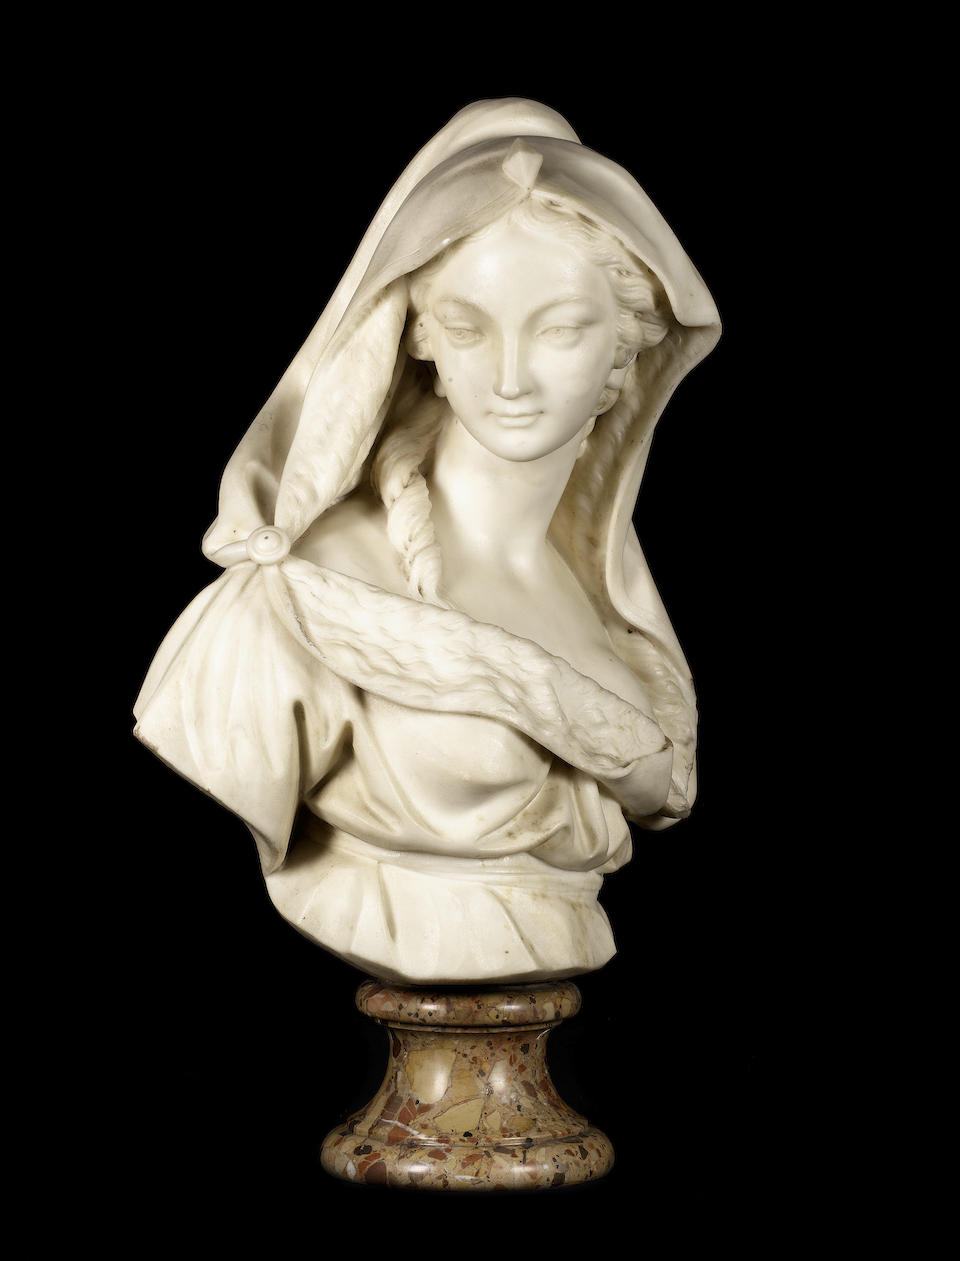 A fine pair of French late 18th century carved white marble busts of ladies, emblematic of Summer and Winter by Josse-François-Joseph Leriche (1738 - 1812), one dated 1778, the other dated 1780